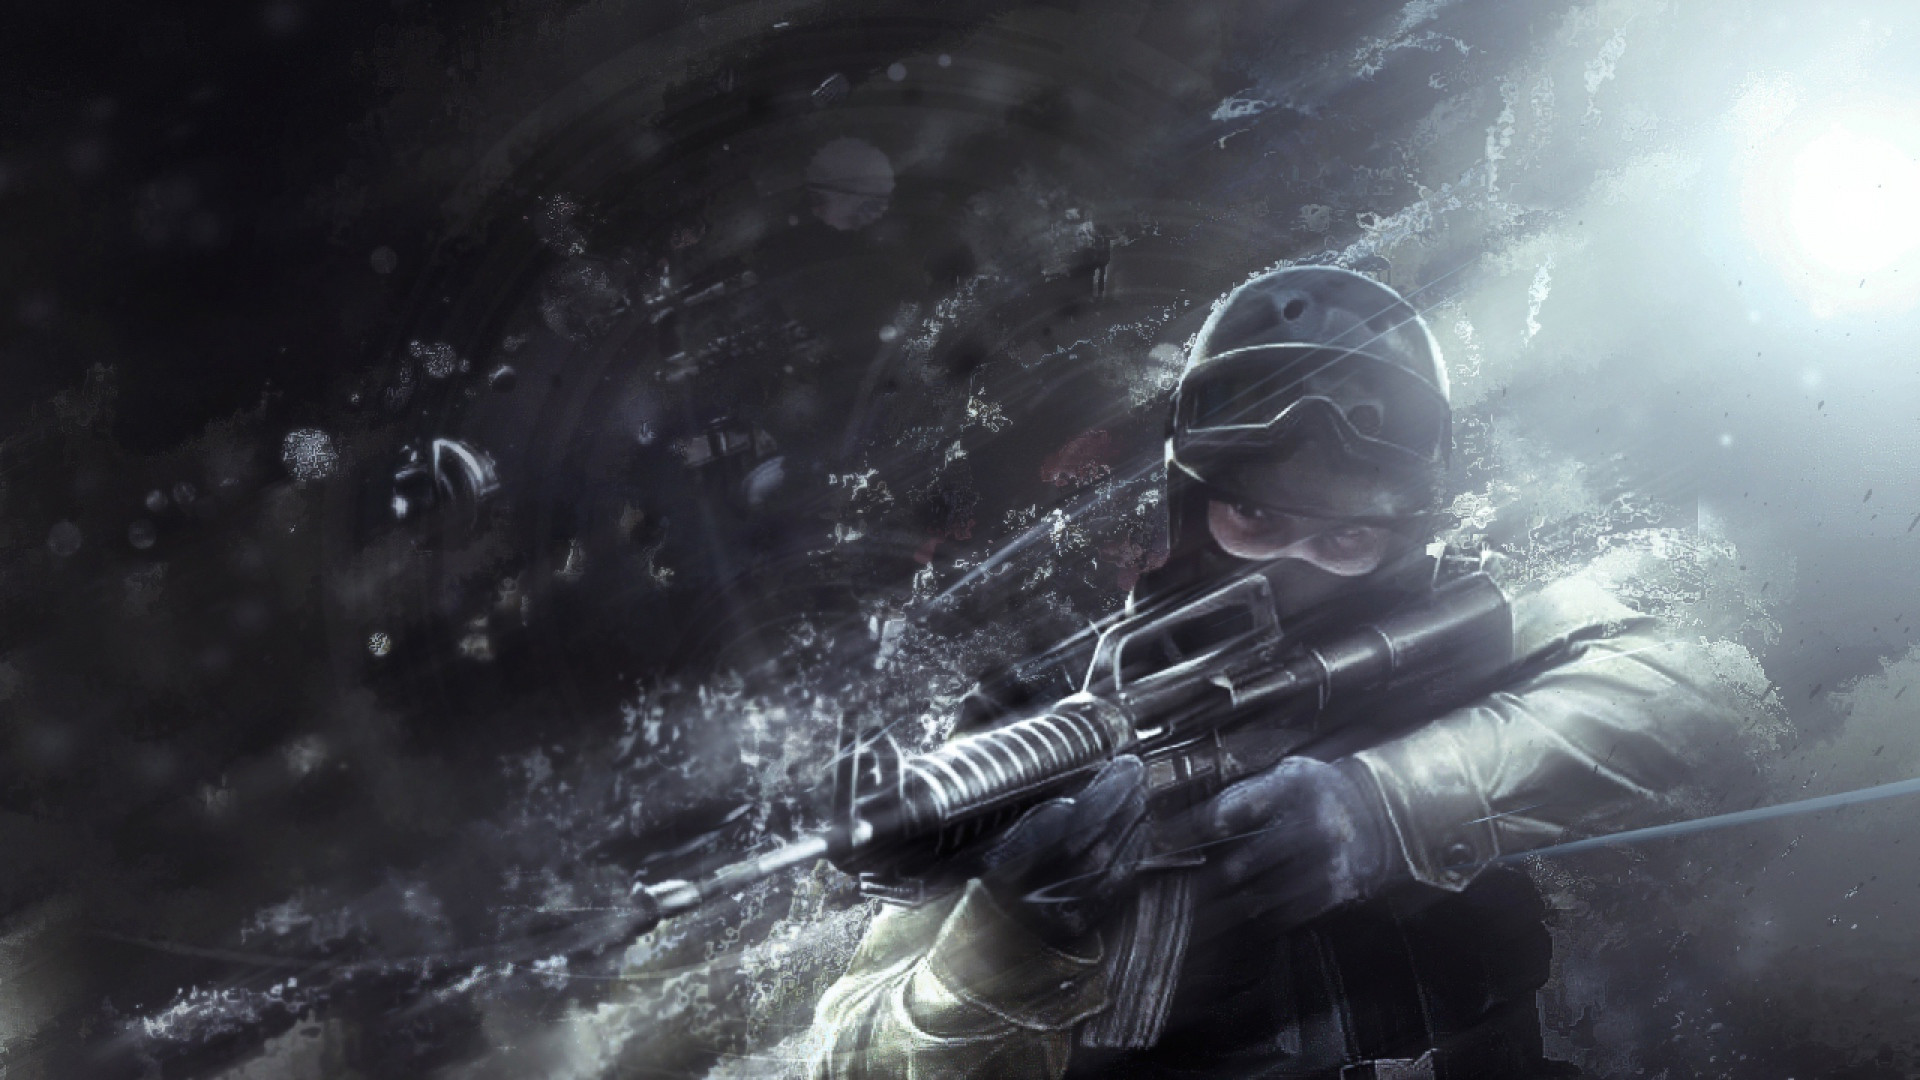 Collection Of Counter Strike Wallpaper On HDWallpapers